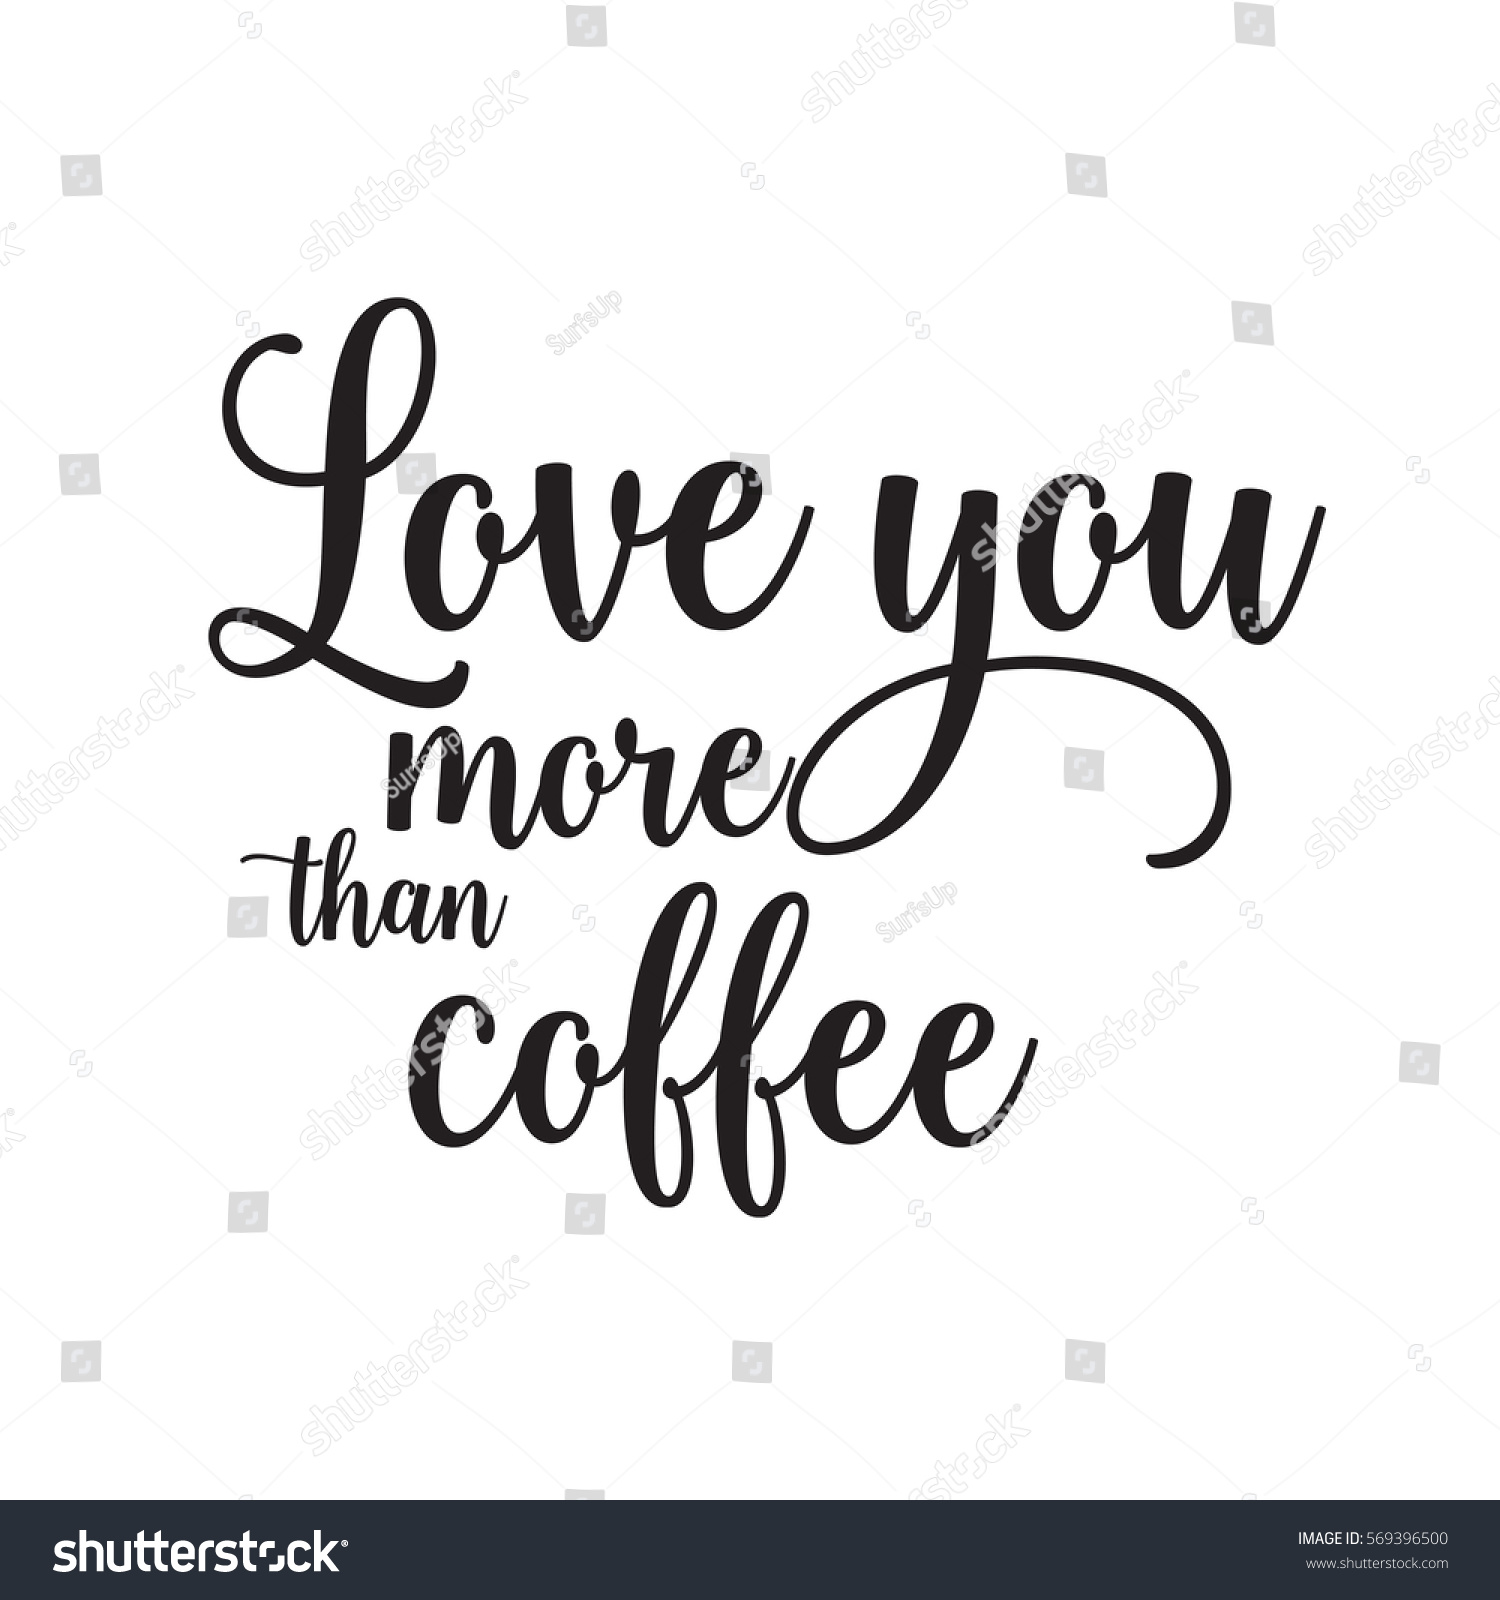 Love you more than coffee calligraphy stock vector